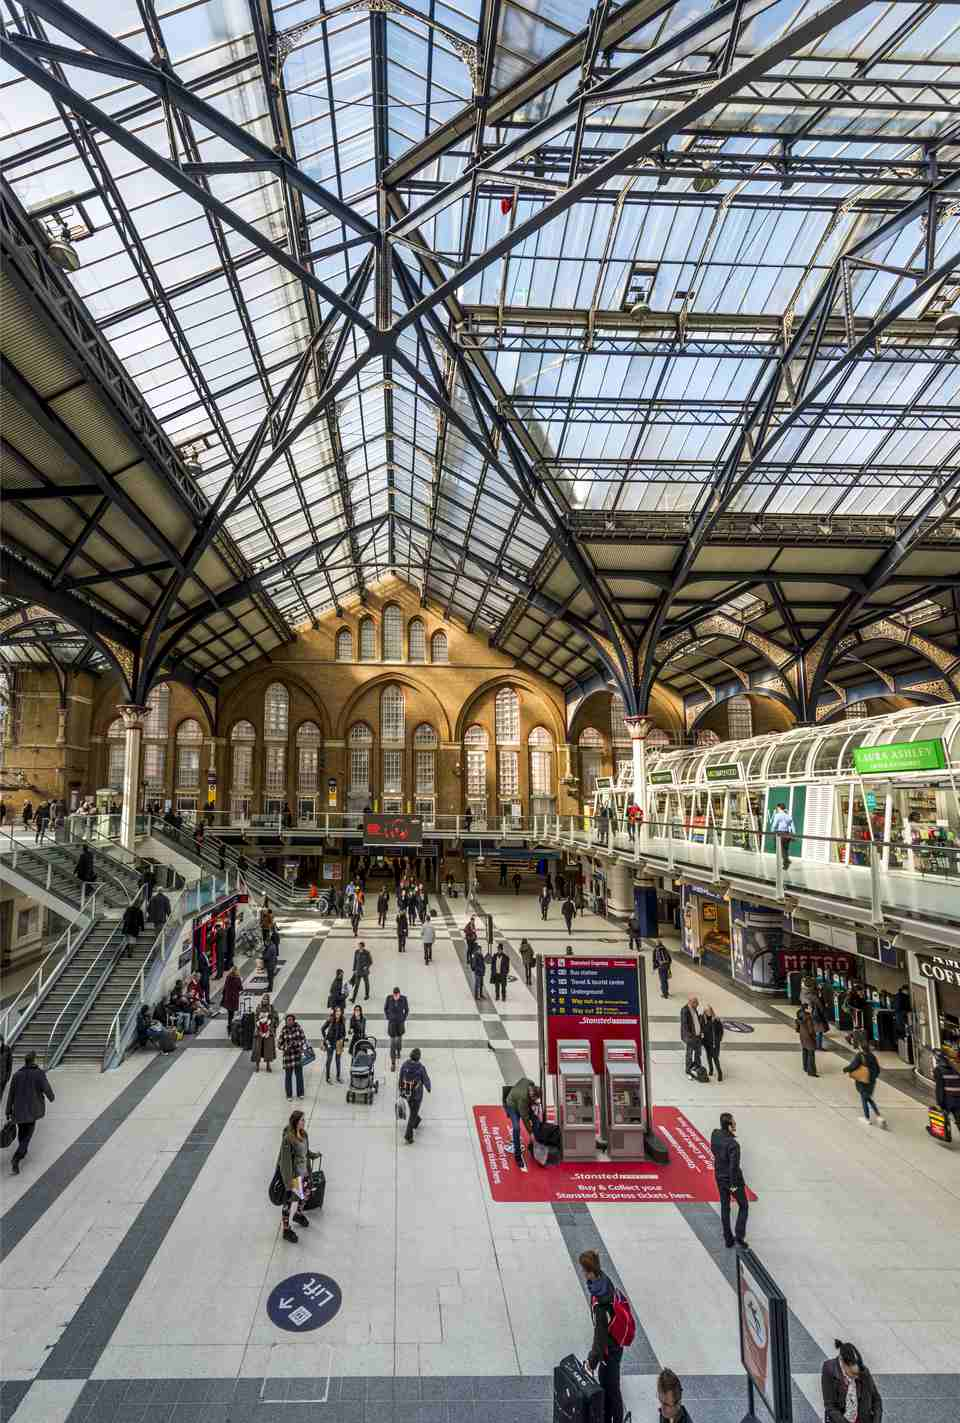 Liverpool Street Station, London, England - UK